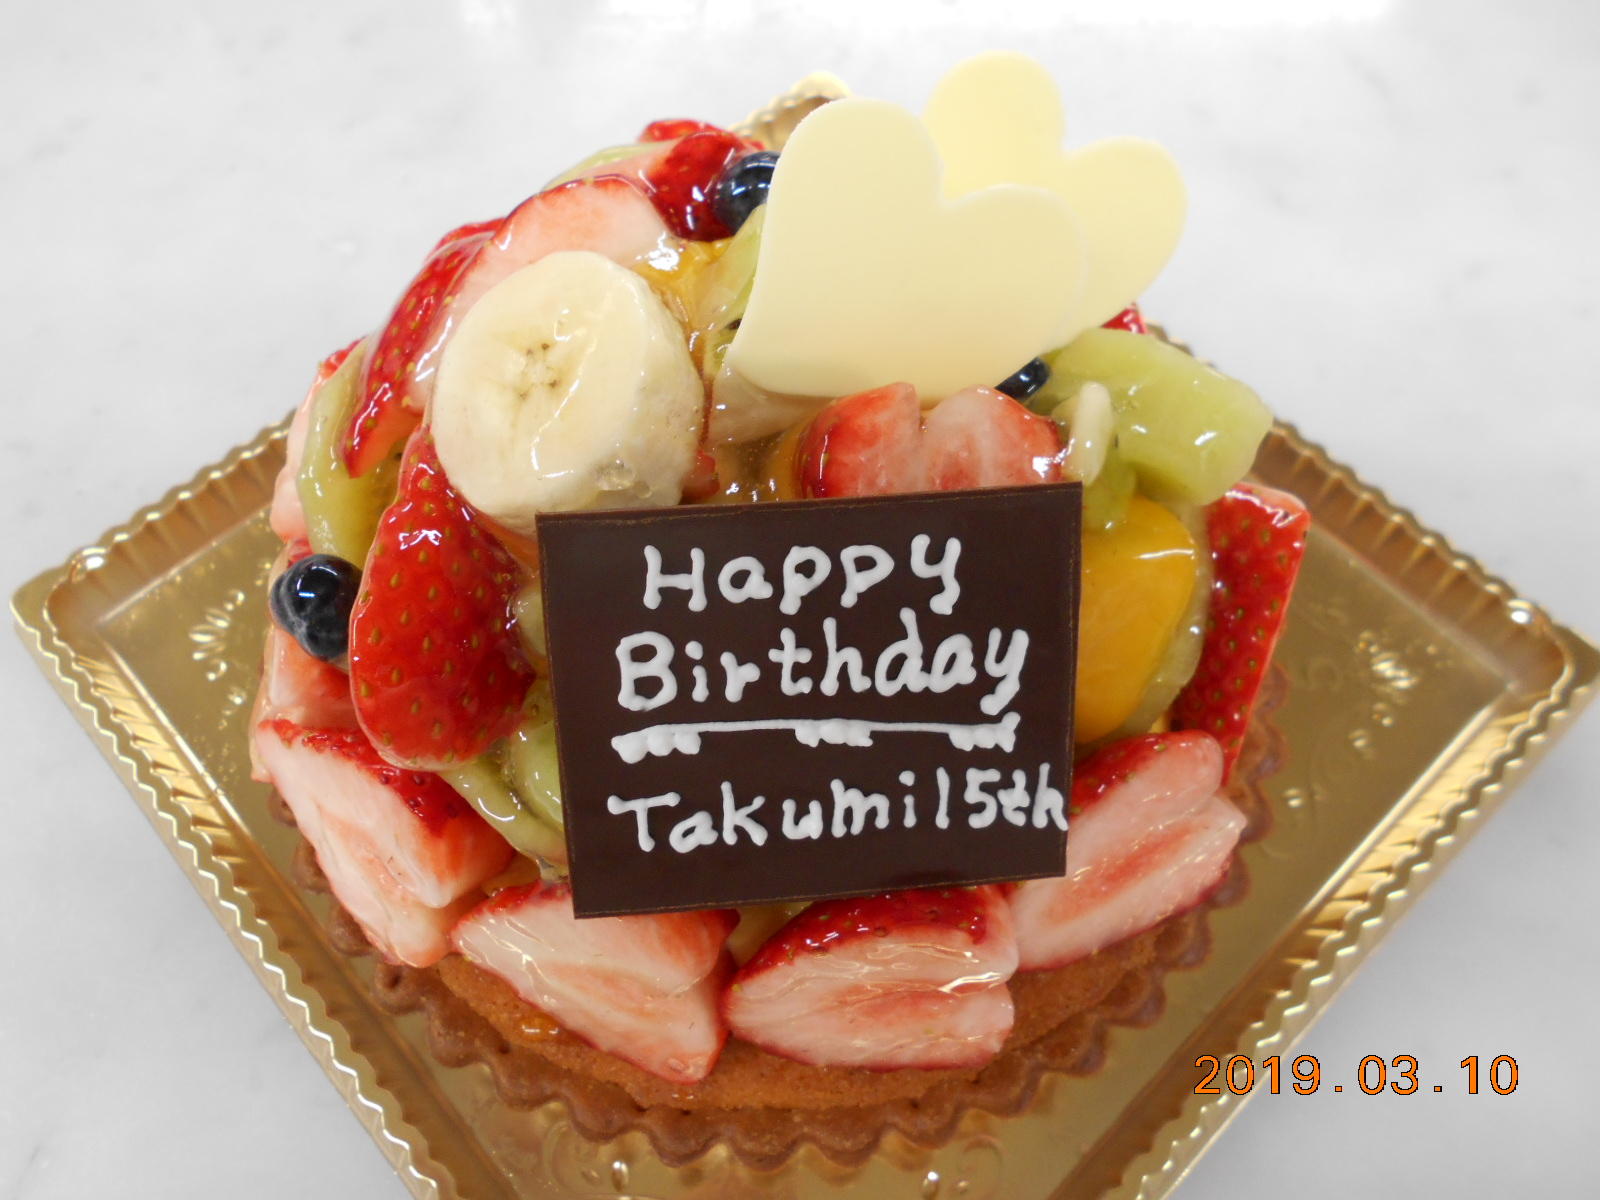 HappyBirthday takumi 15th